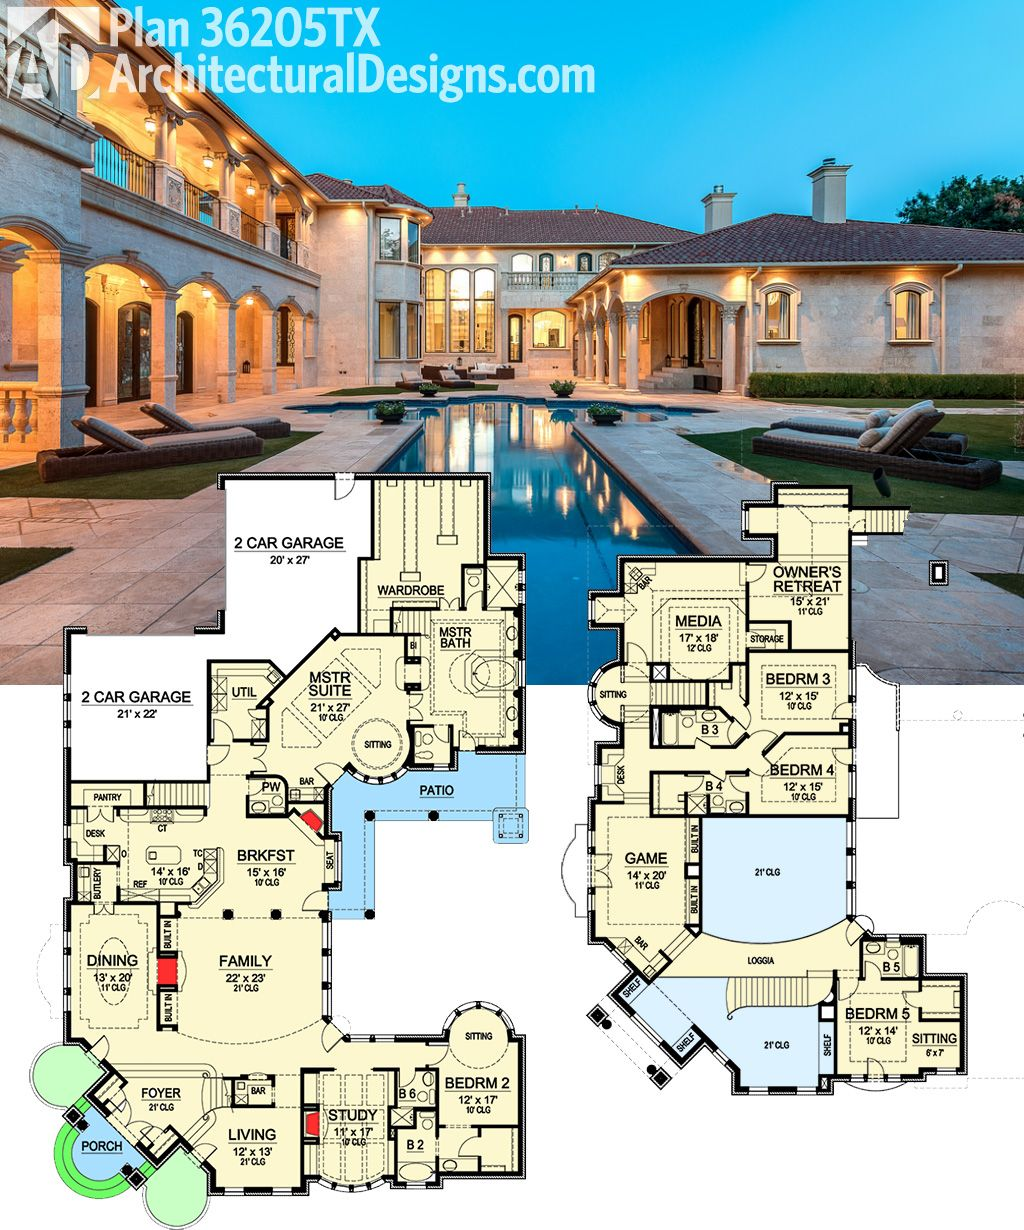 Architectural Designs Luxury House Plan 36205TX gives you